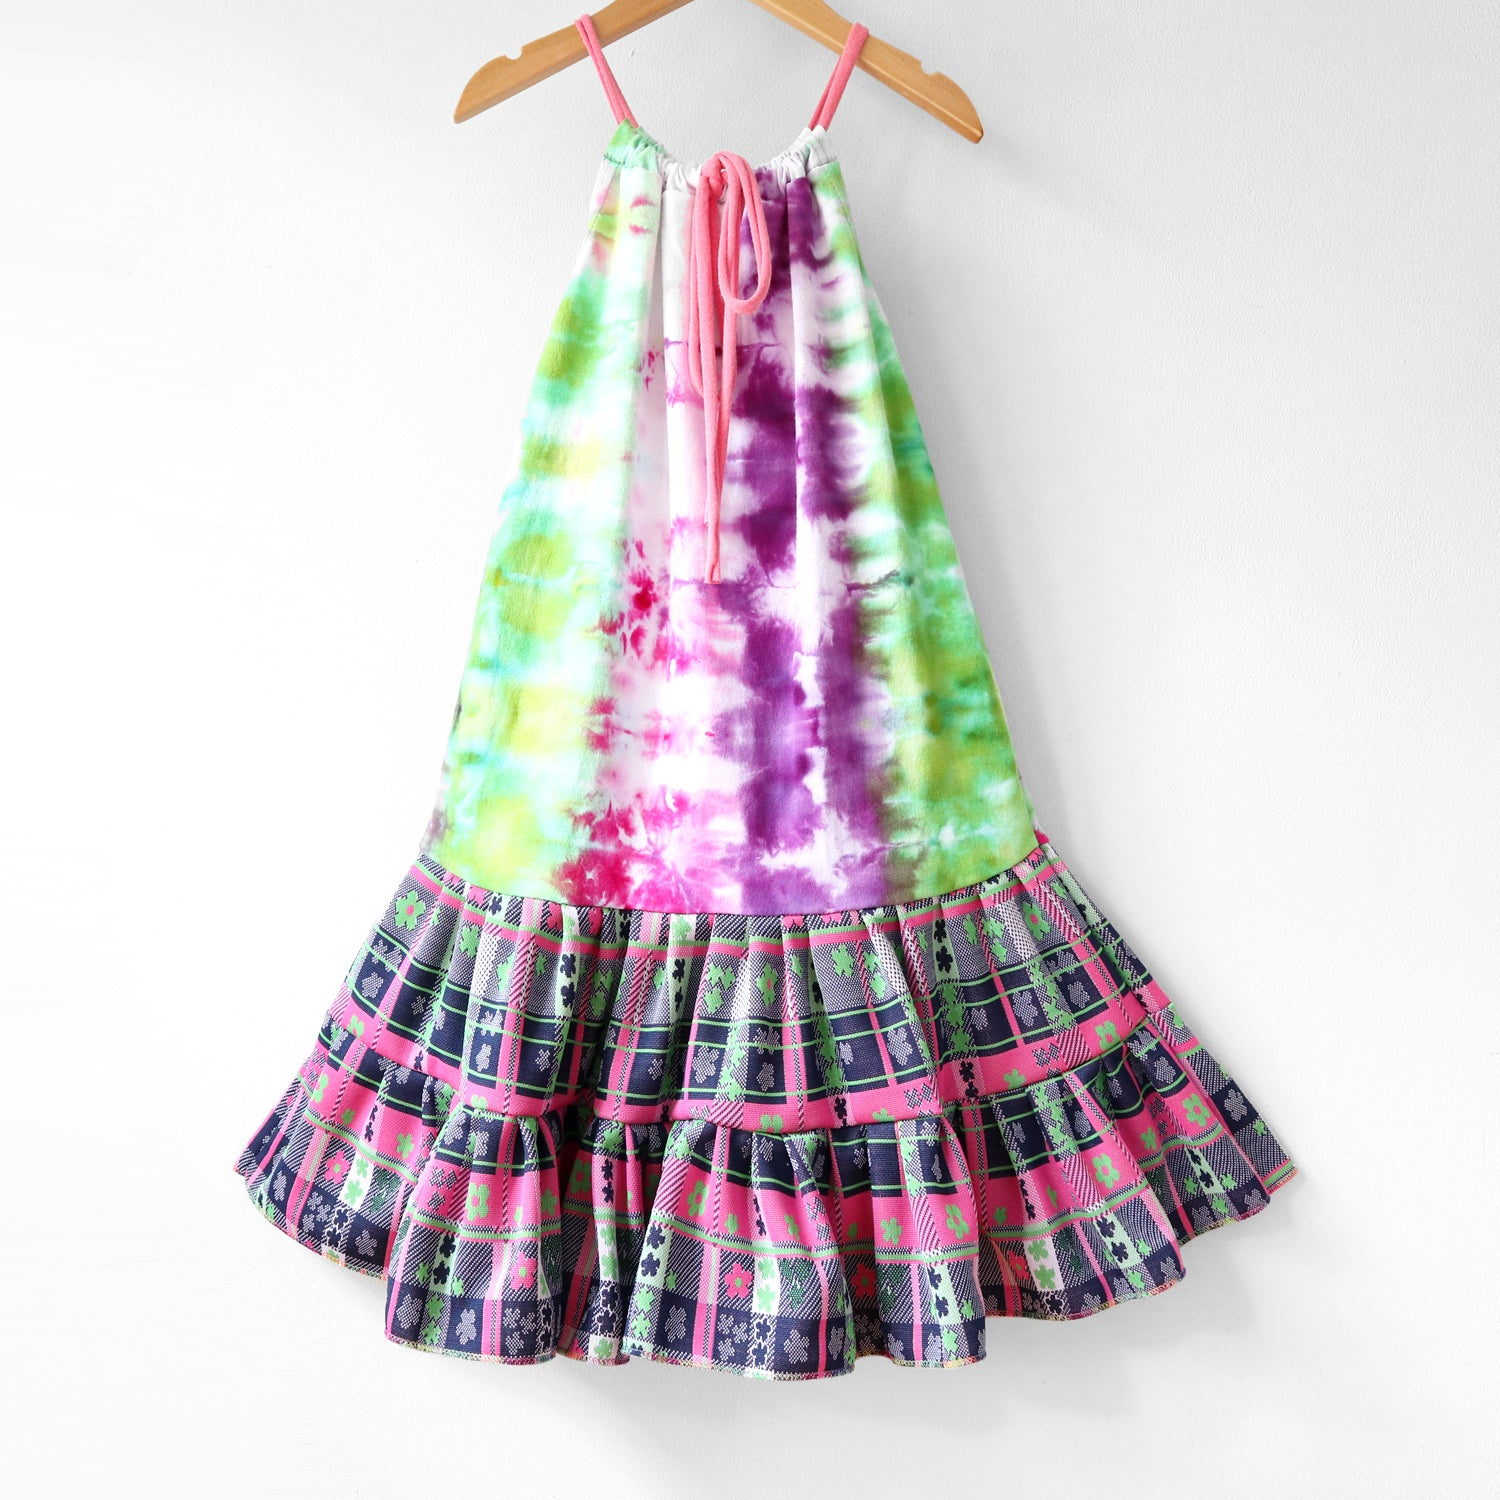 Image of flower tiedye green pink purple 8/10 vintage fabric tie drawstring swing dress courtneycourtney